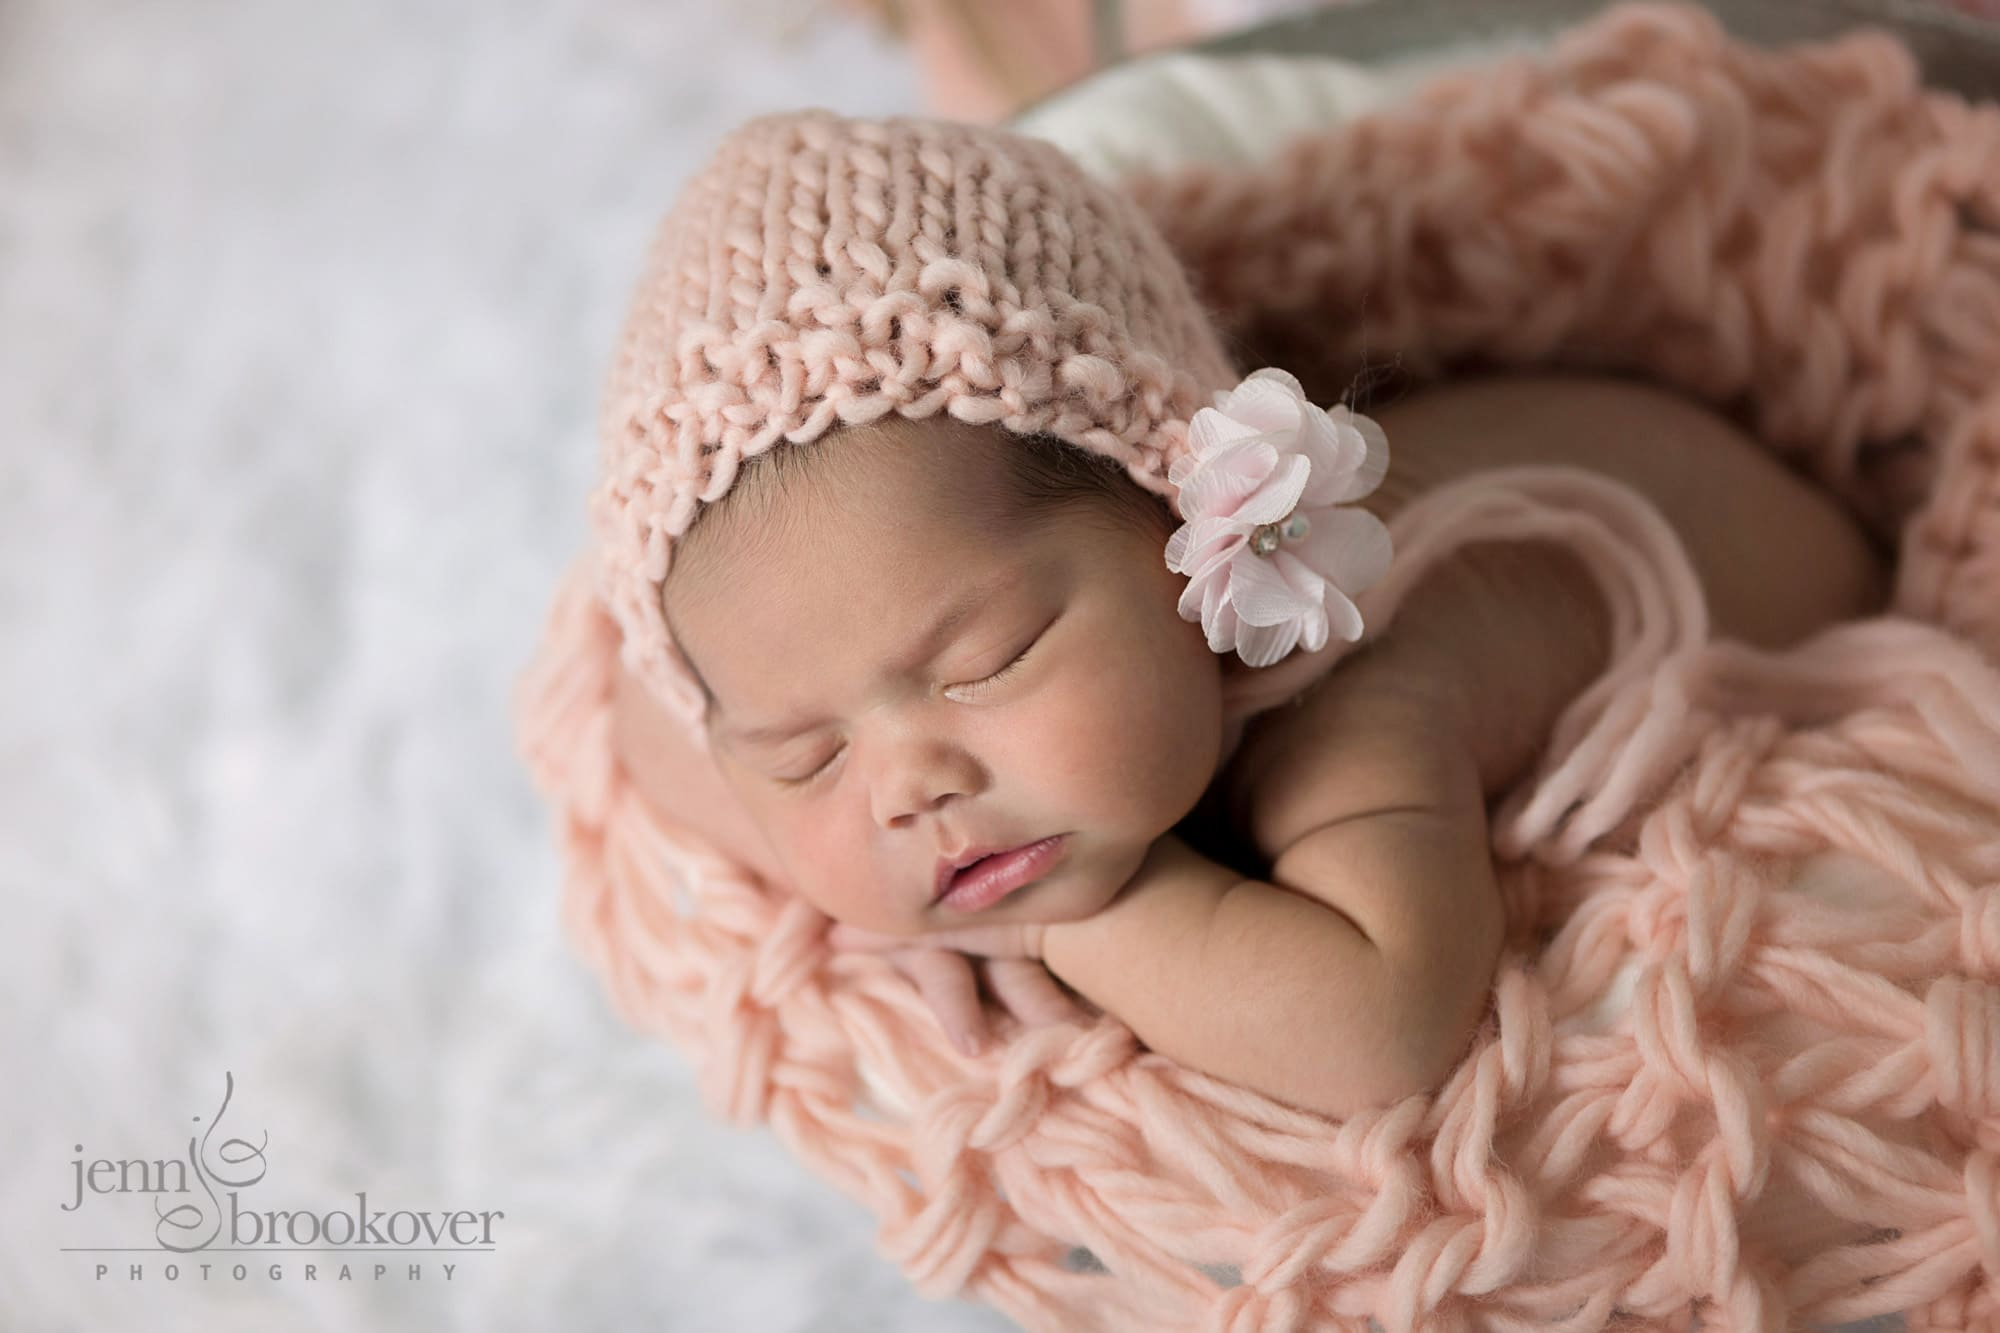 newborn in a handmade hat peach snuggled up for her newborn portrait session taken by Jenn Brookover in San Antonio, Texas